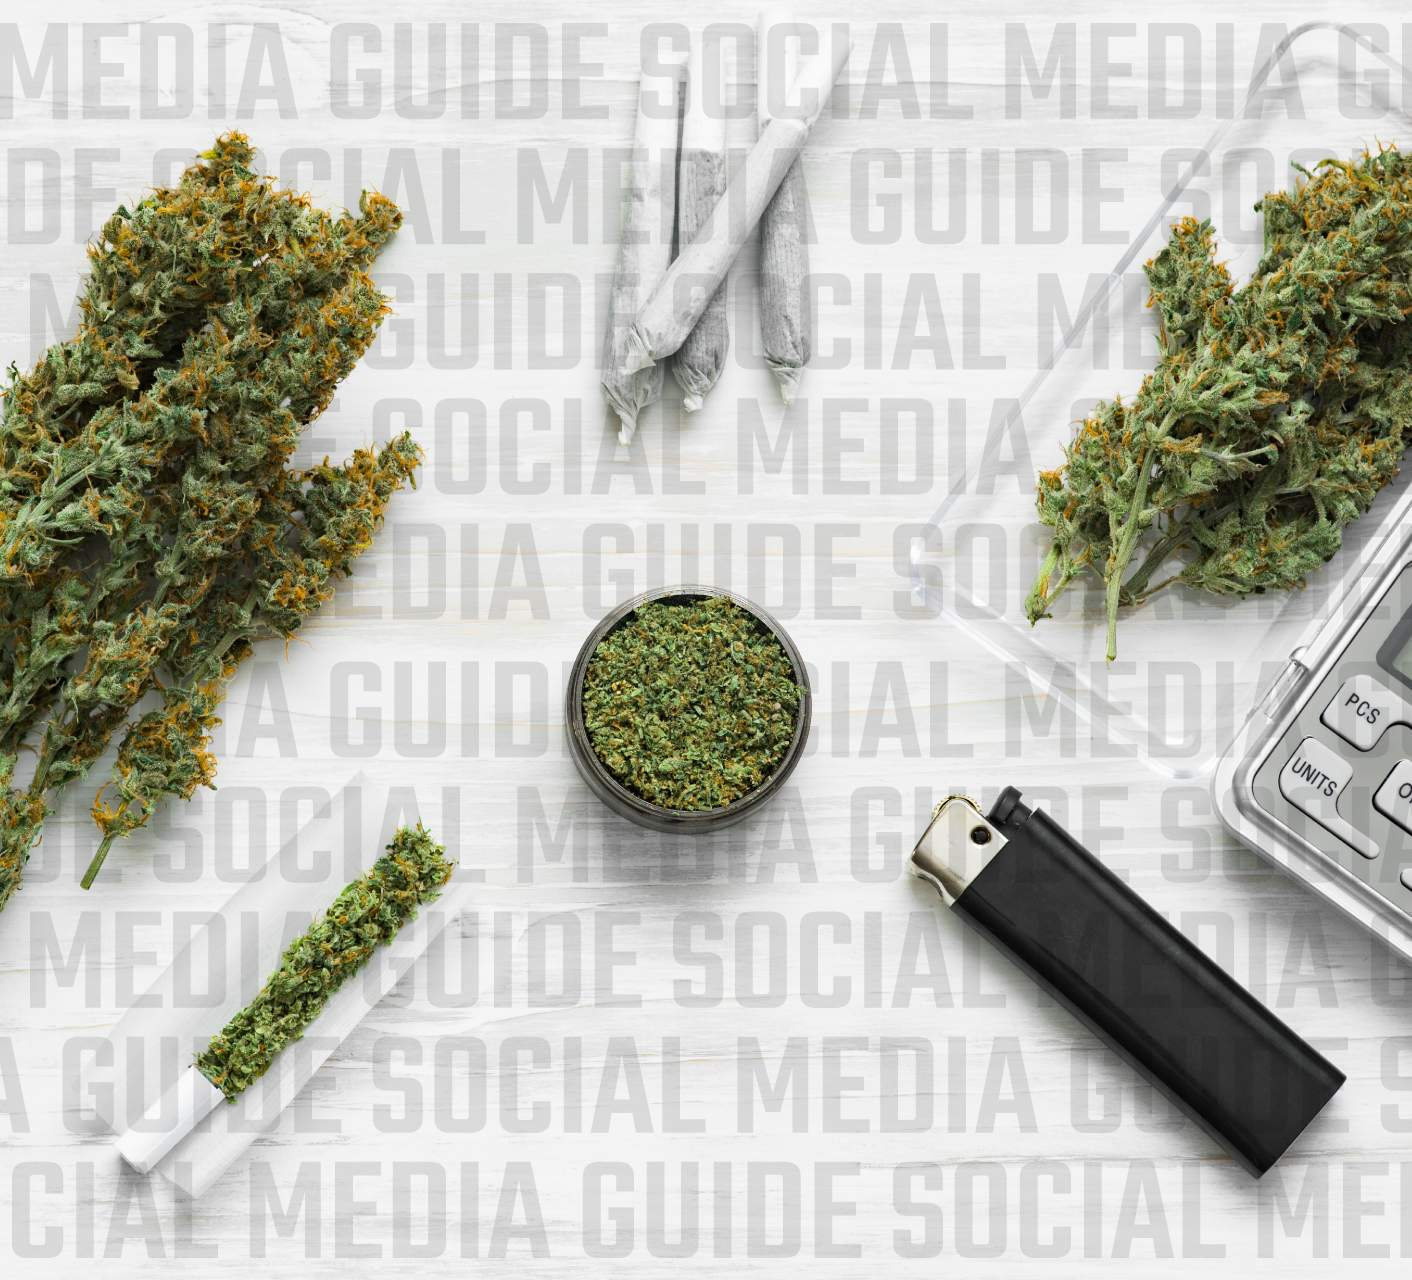 The Cannabis Dispensary Social Media Guide image